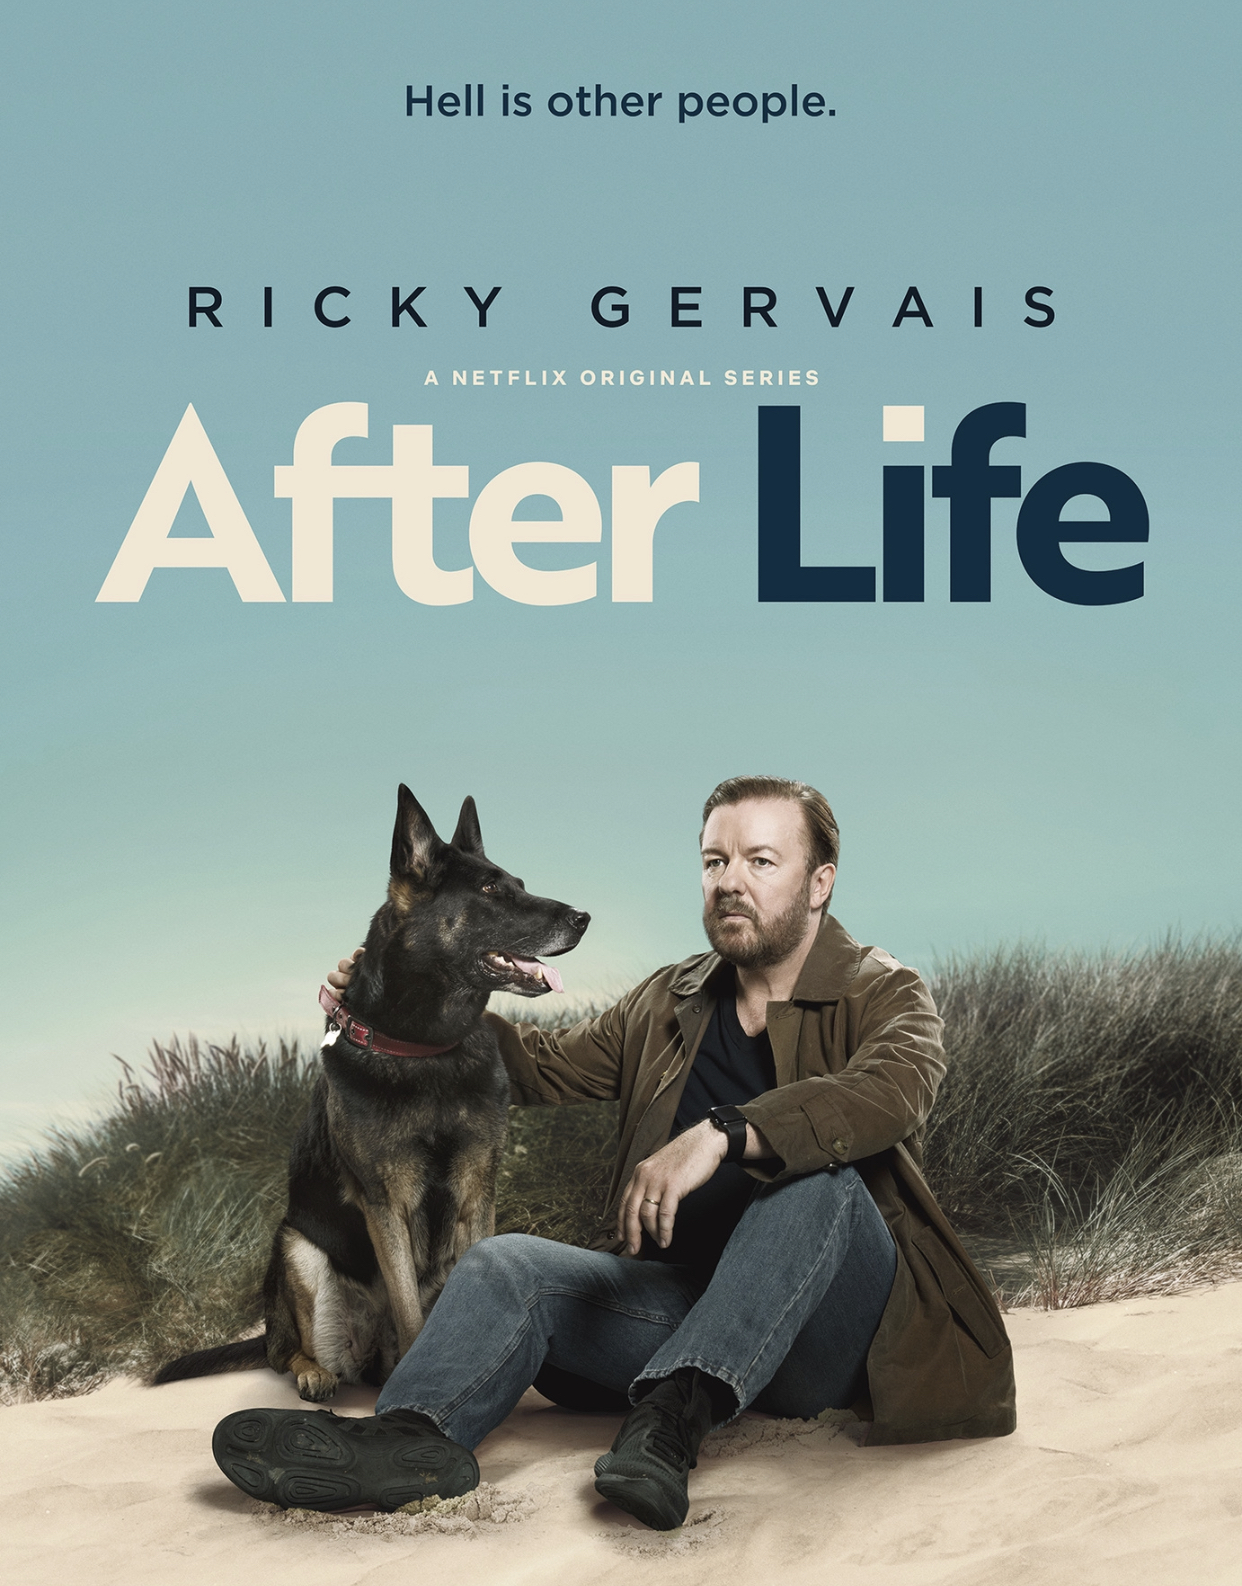 Cover image of the After Life show on Netflix..